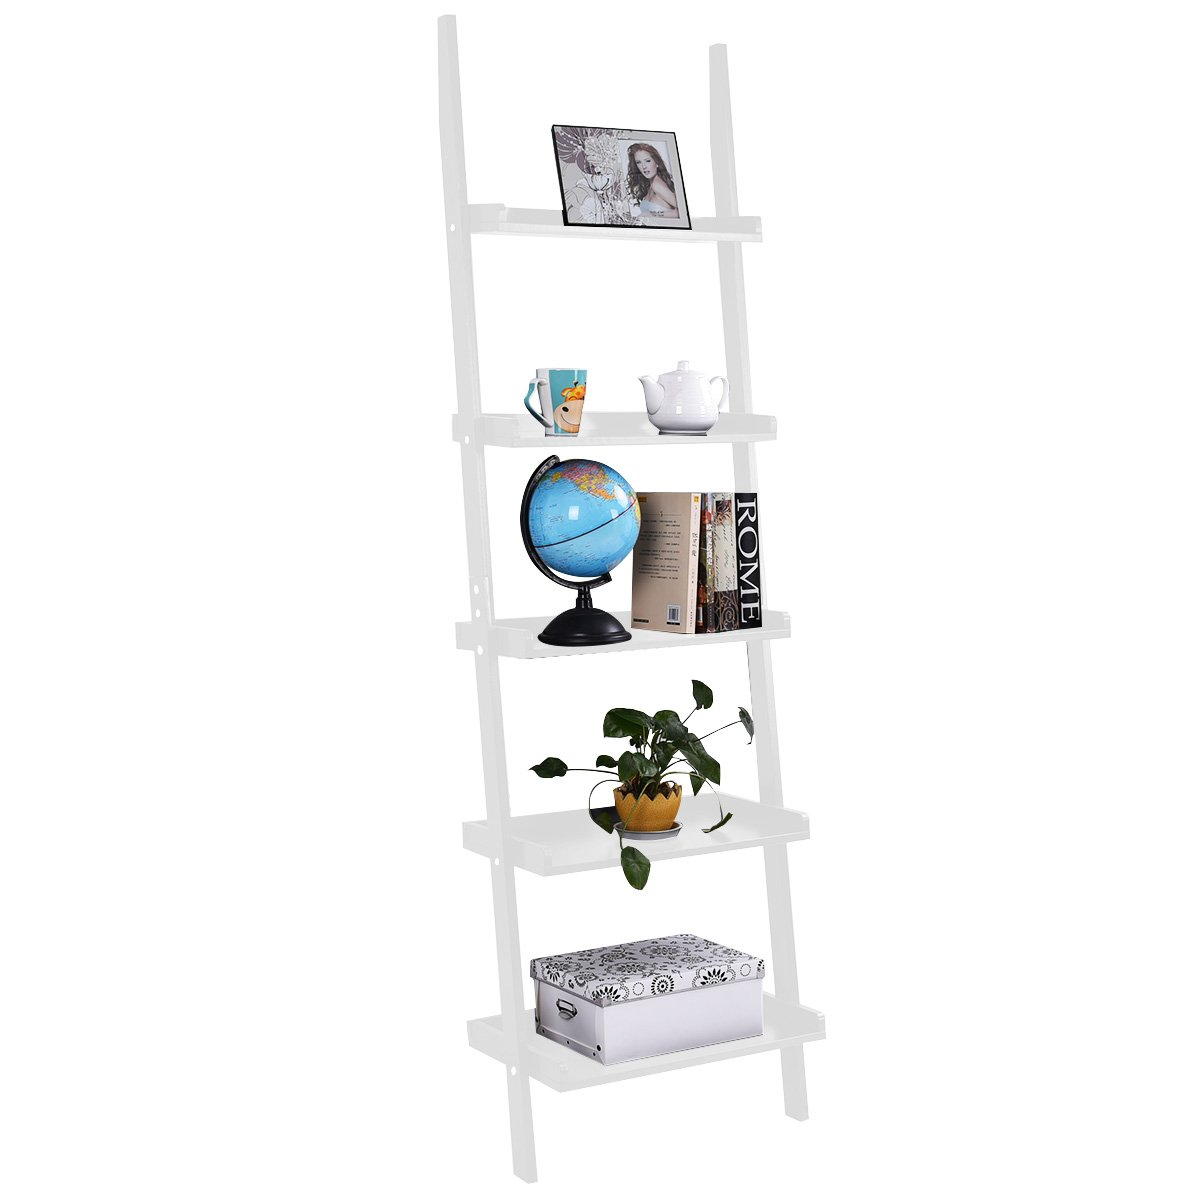 TANGKULA Ladder Bookcase 5-Tier Wood Leaning Shelf Wall Plant Shelf Ladder for Home Office Modern Flower Book Display Shelf Storage Rack Stable A-Frame Wooden Ladder Shelf (White) by Tangkula